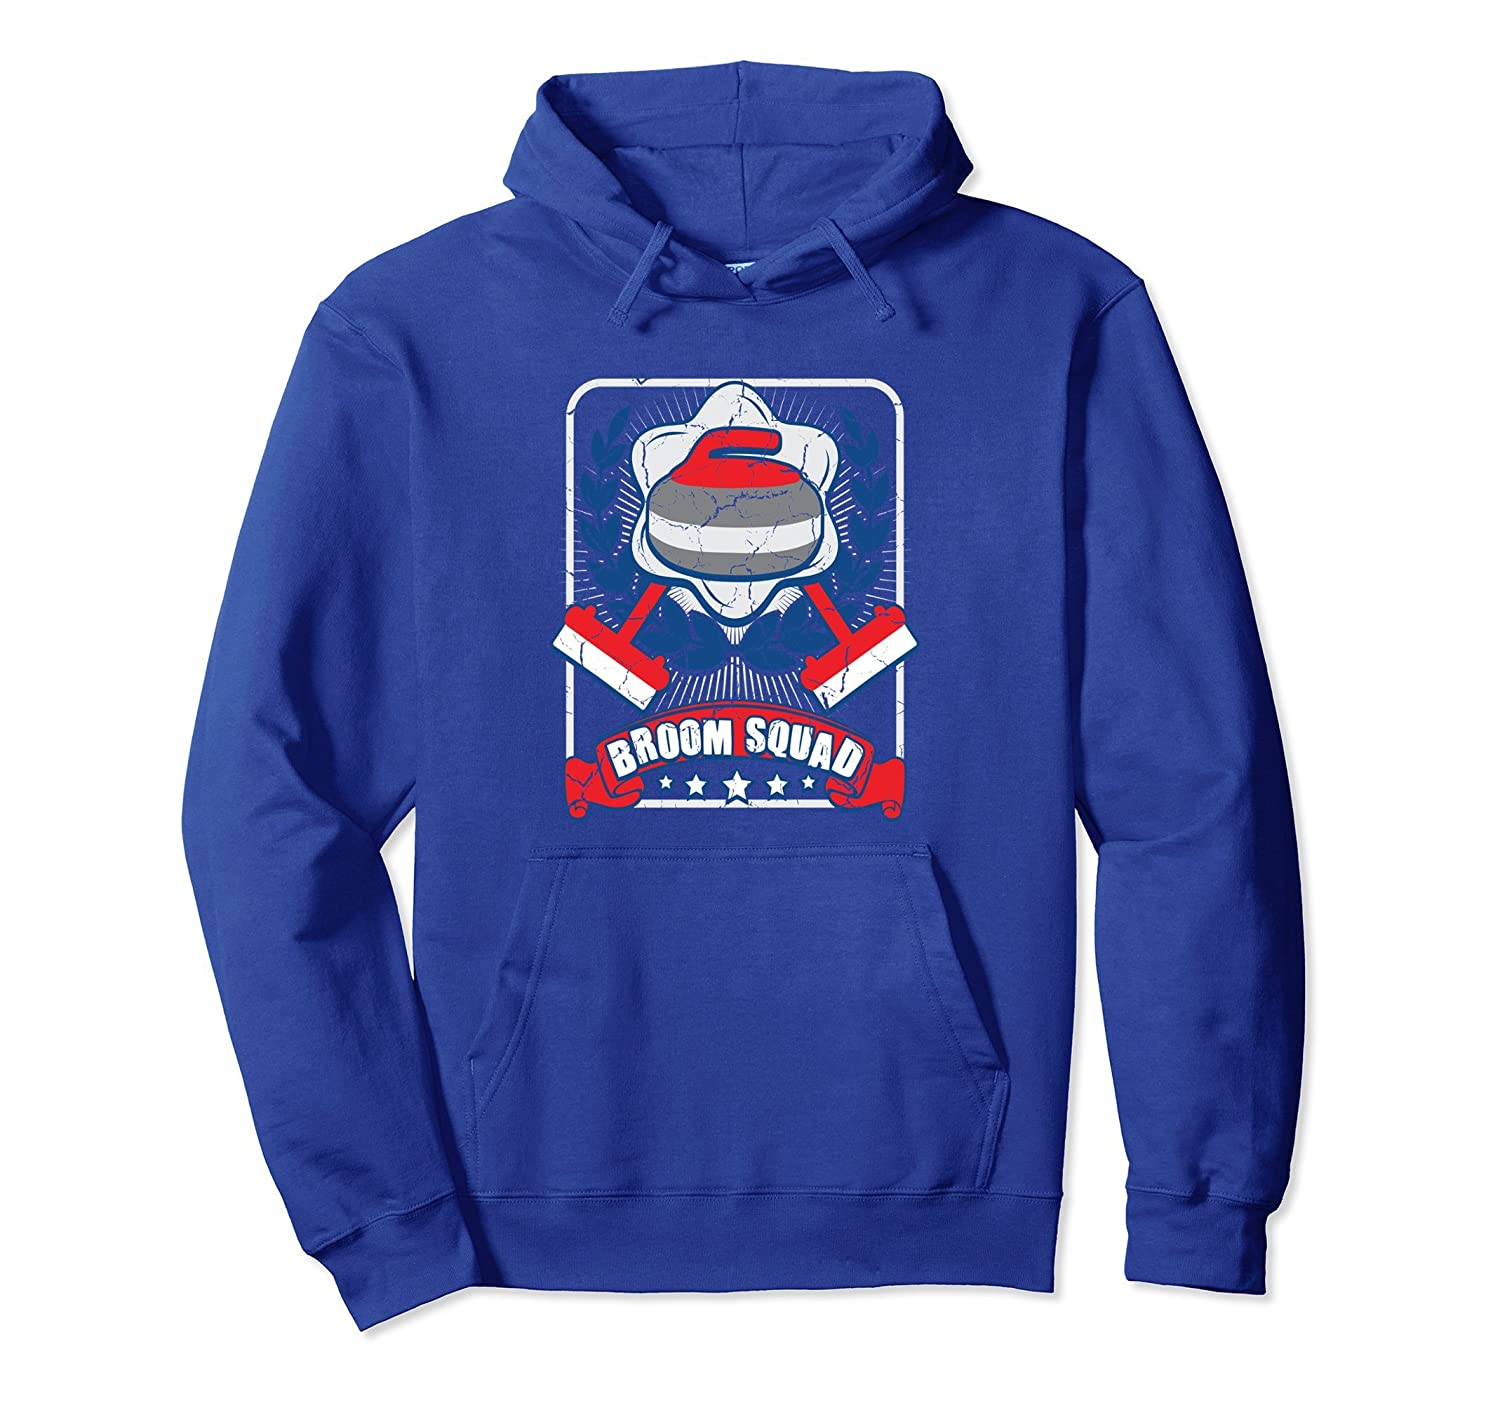 Broom Squad Funny Curling Hoodie Curling Gift-ah my shirt one gift